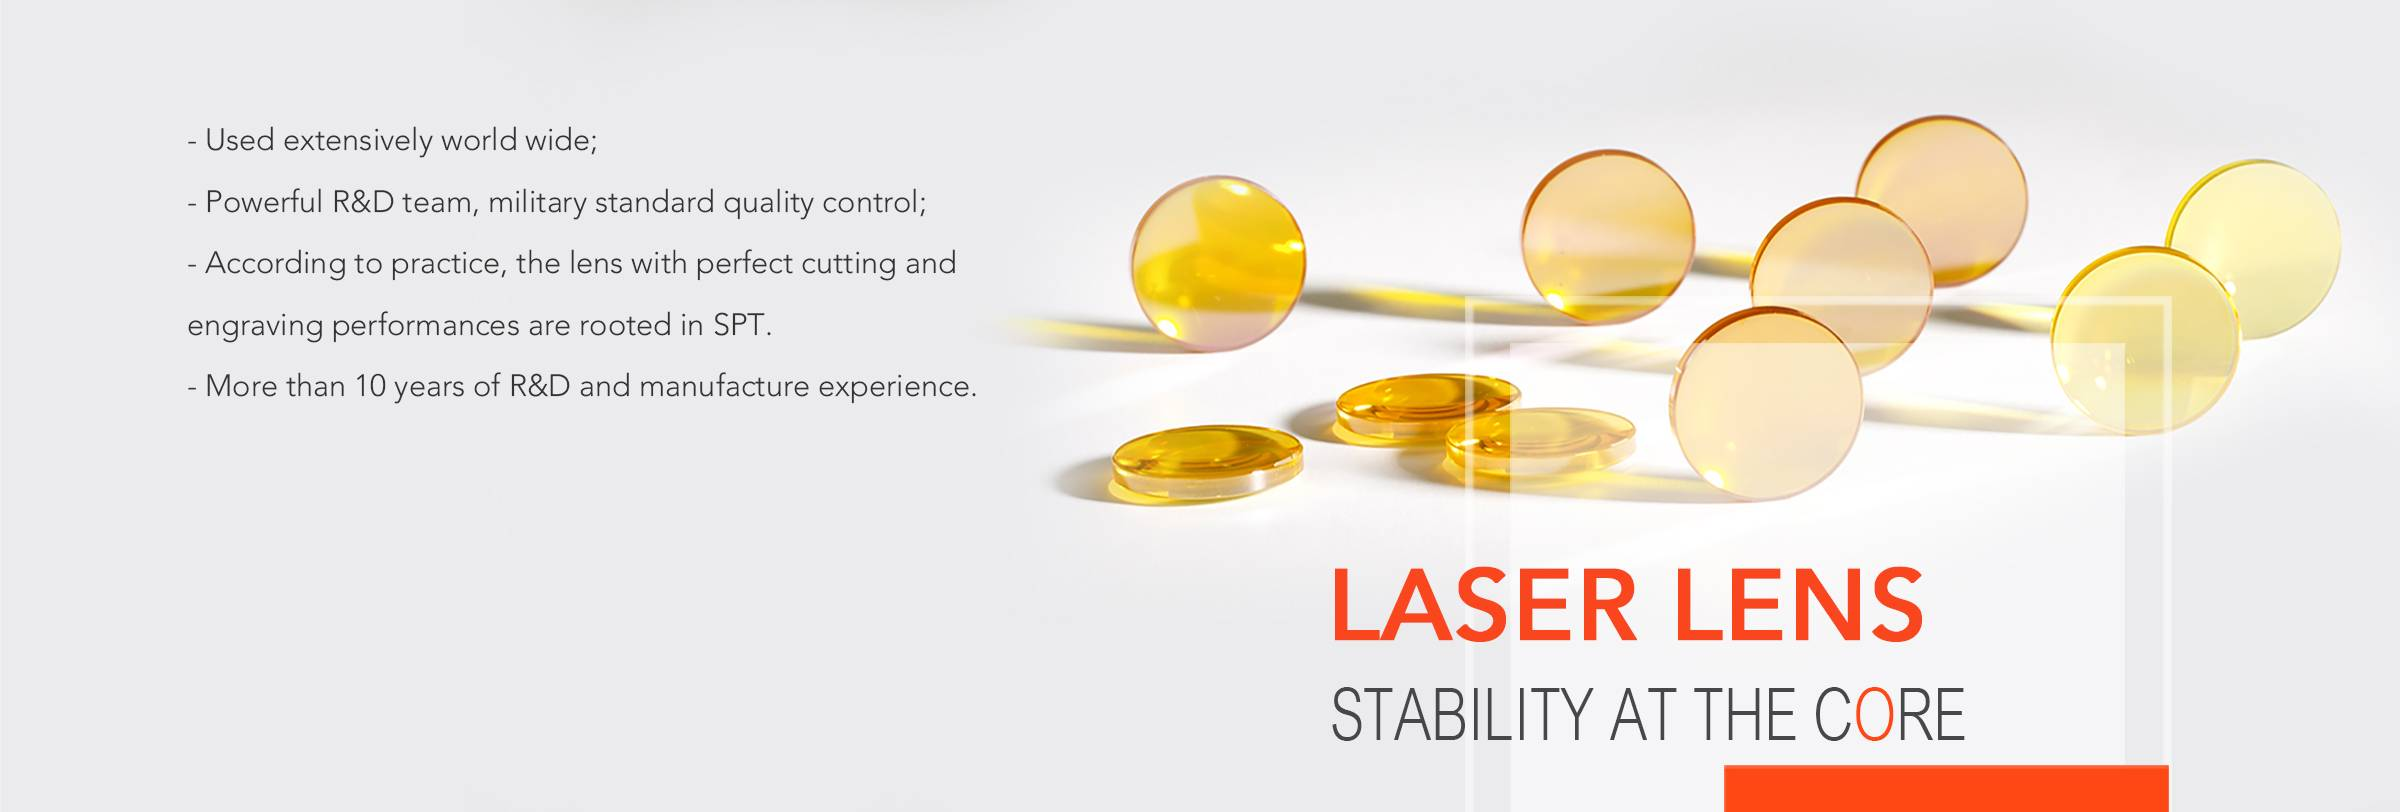 SPT Laser,co2 laser,co2 laser tube,co2 laser lens,laser tube manufacturer,co2 laser machine spare parts,co2 laser kit,RF co2 laser tube,laser tube